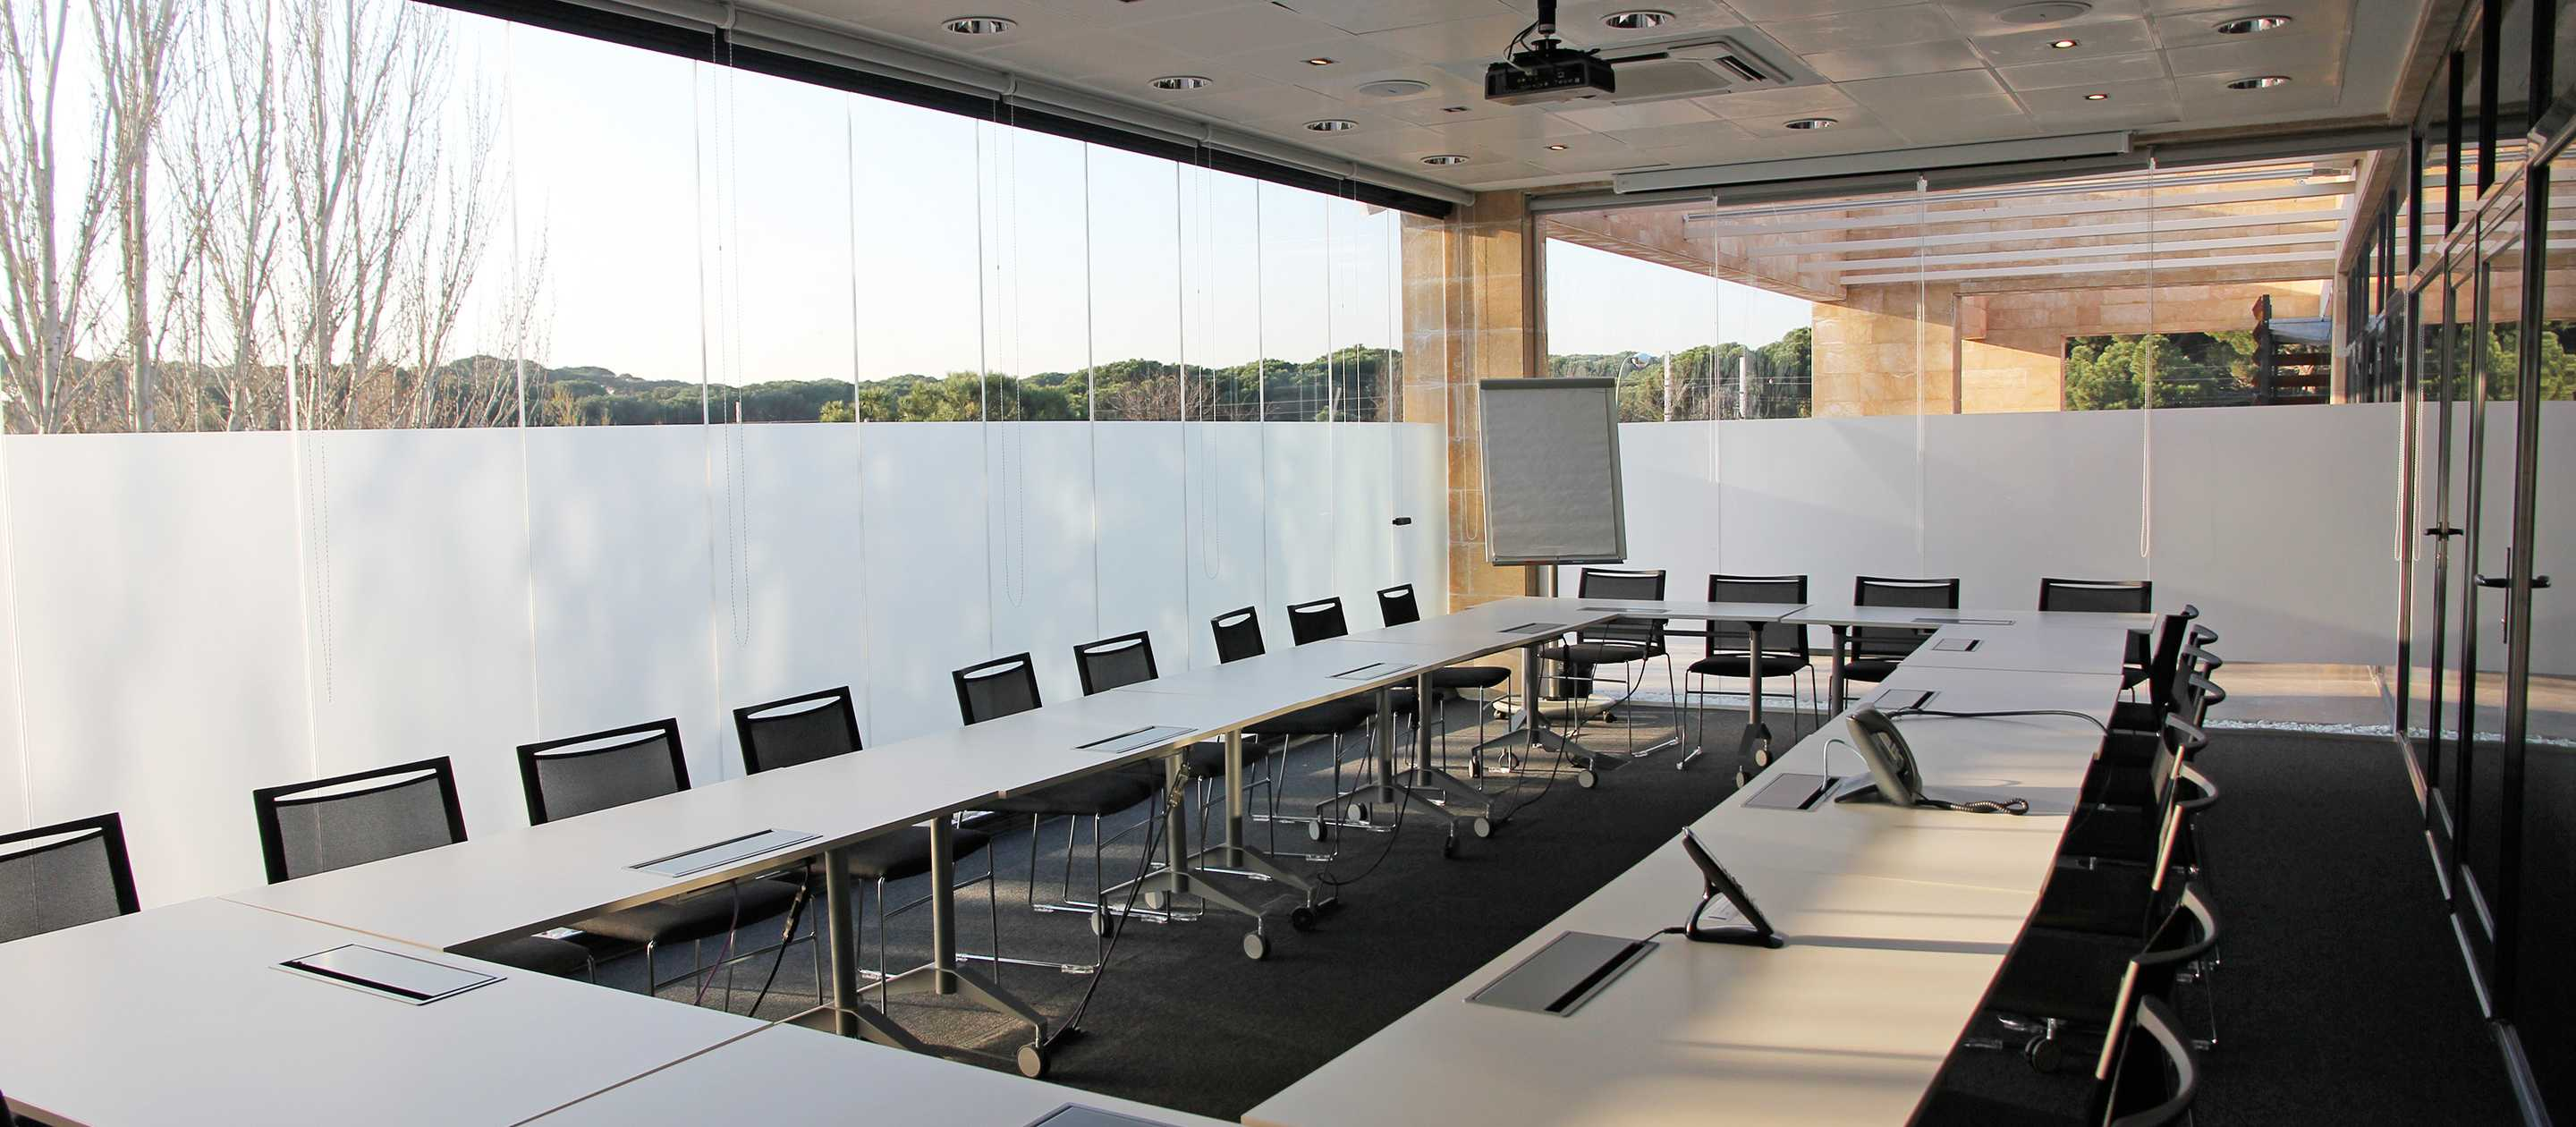 retractable glass, business glass, glass walls for business, retractable glass for businesses